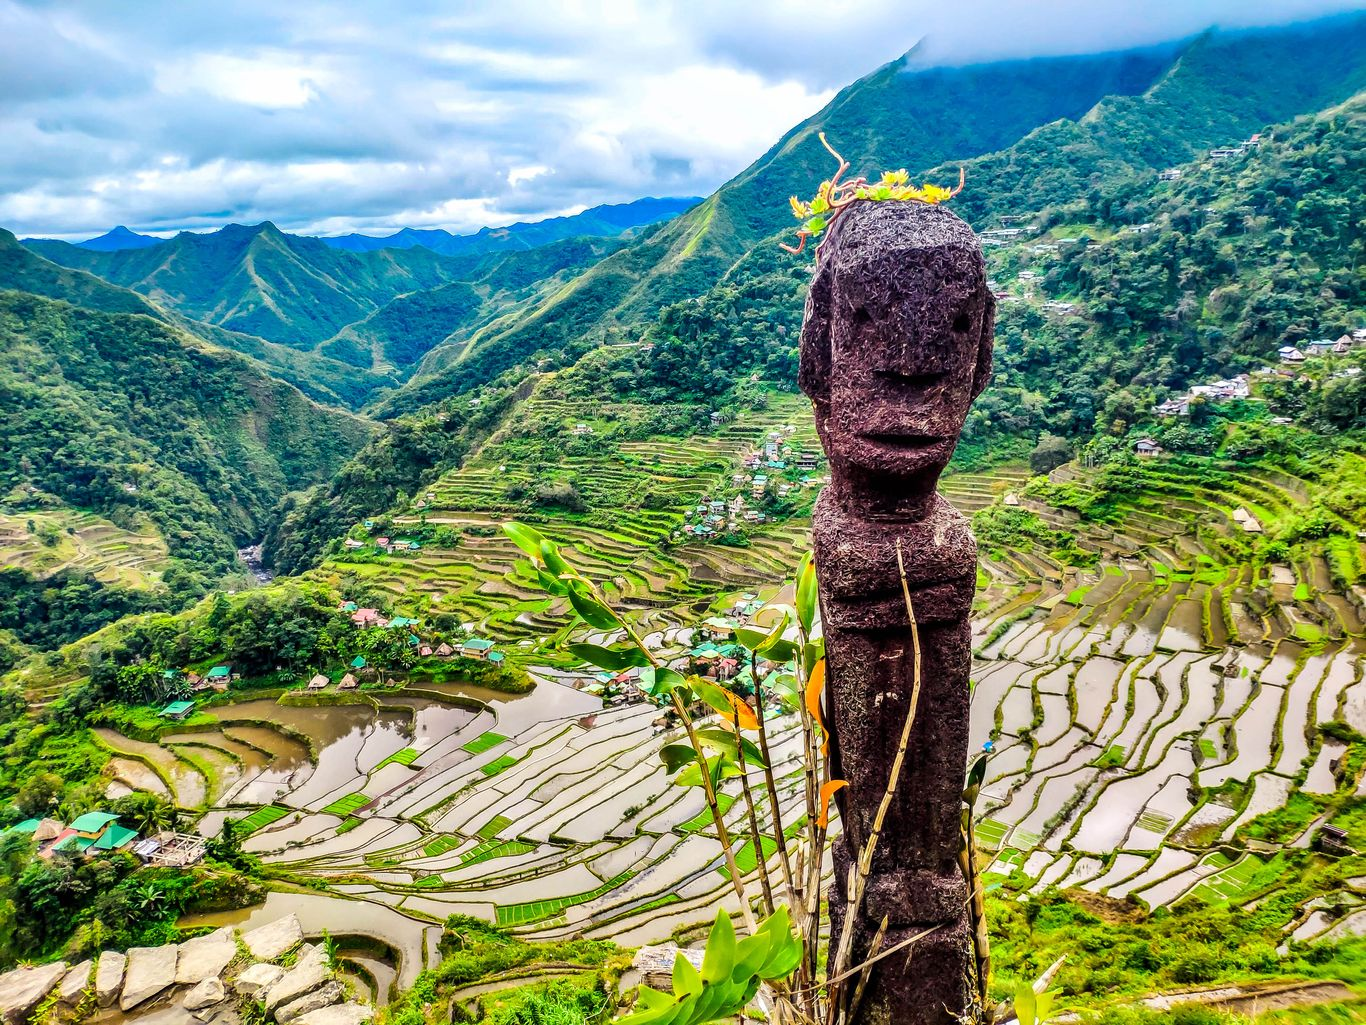 A carved wooden idol backdropped by a cluster of rice terraces carved on a semicircular fashion along the slopes of a mountain fronting a forested ranges